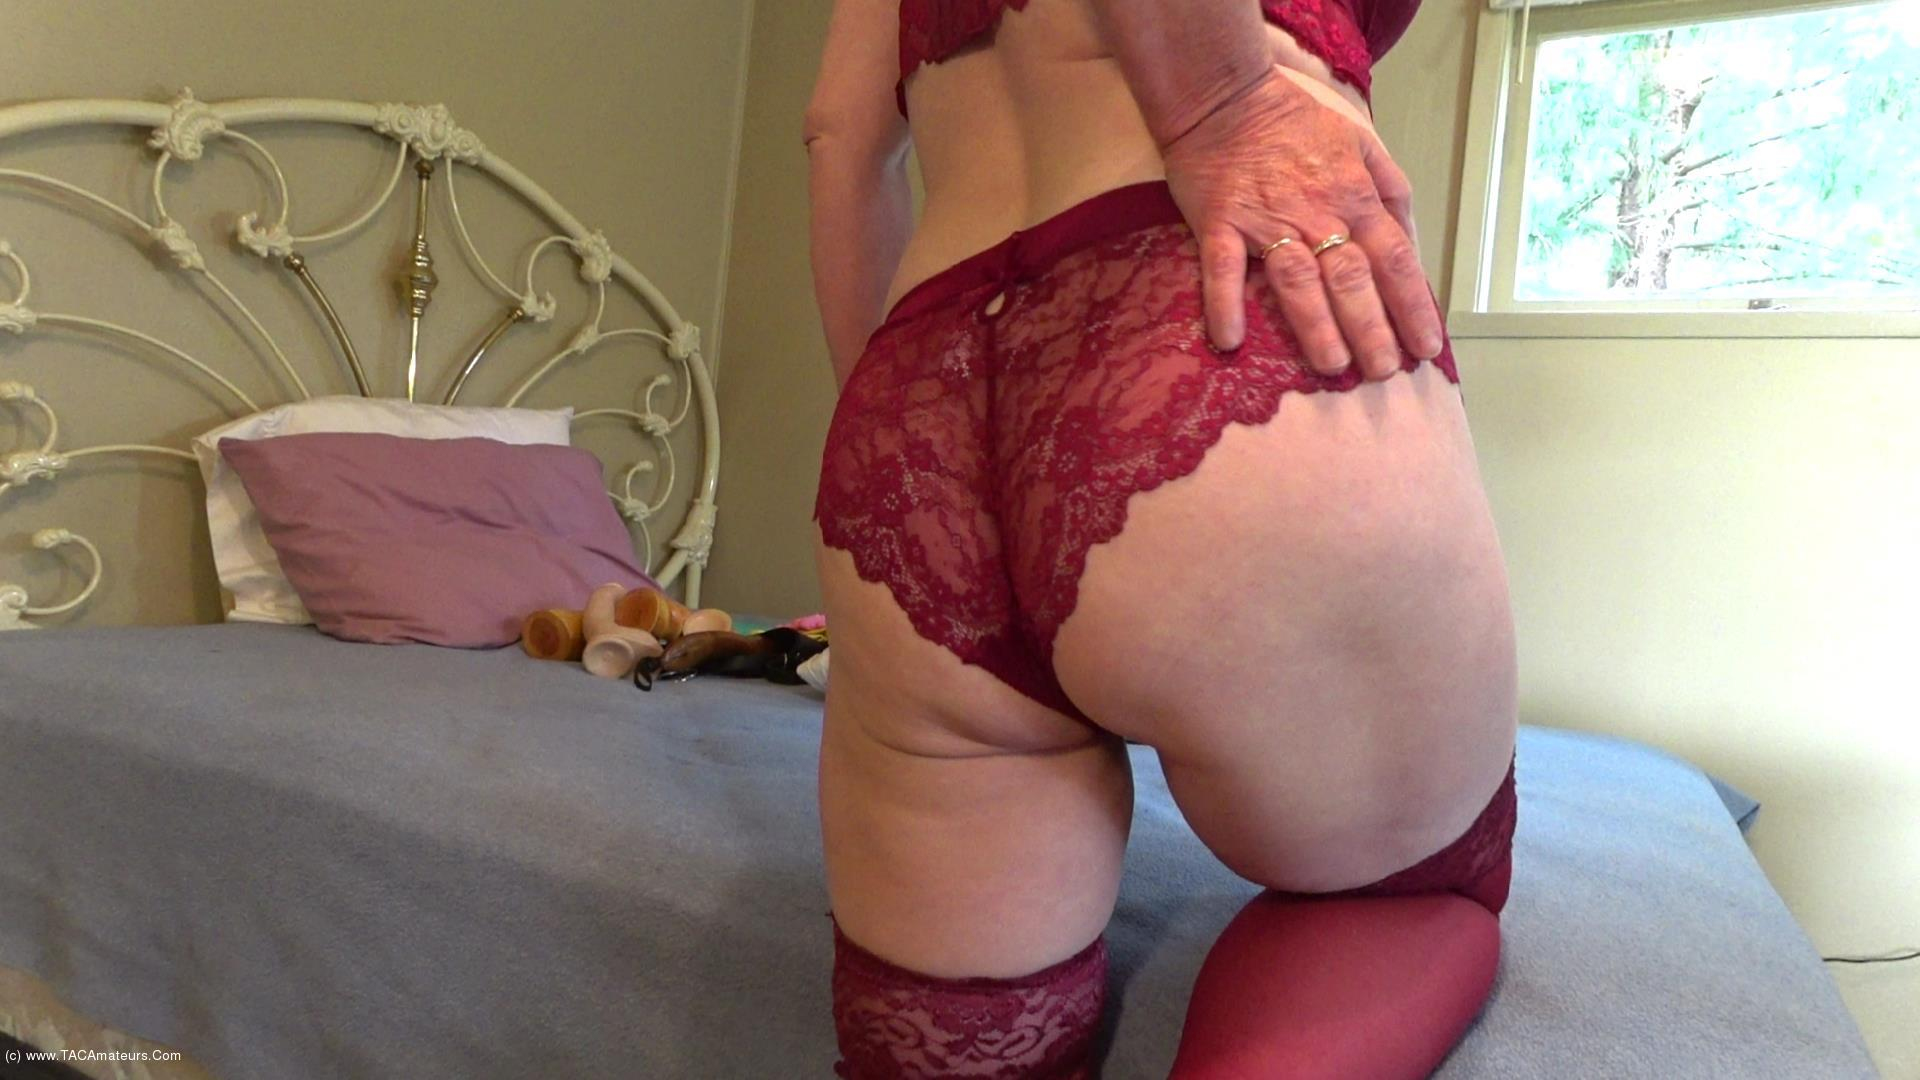 CougarBabeJolee - Panty Sniff Sniff. Cum Get Some Hot Arse In Panties scene 1